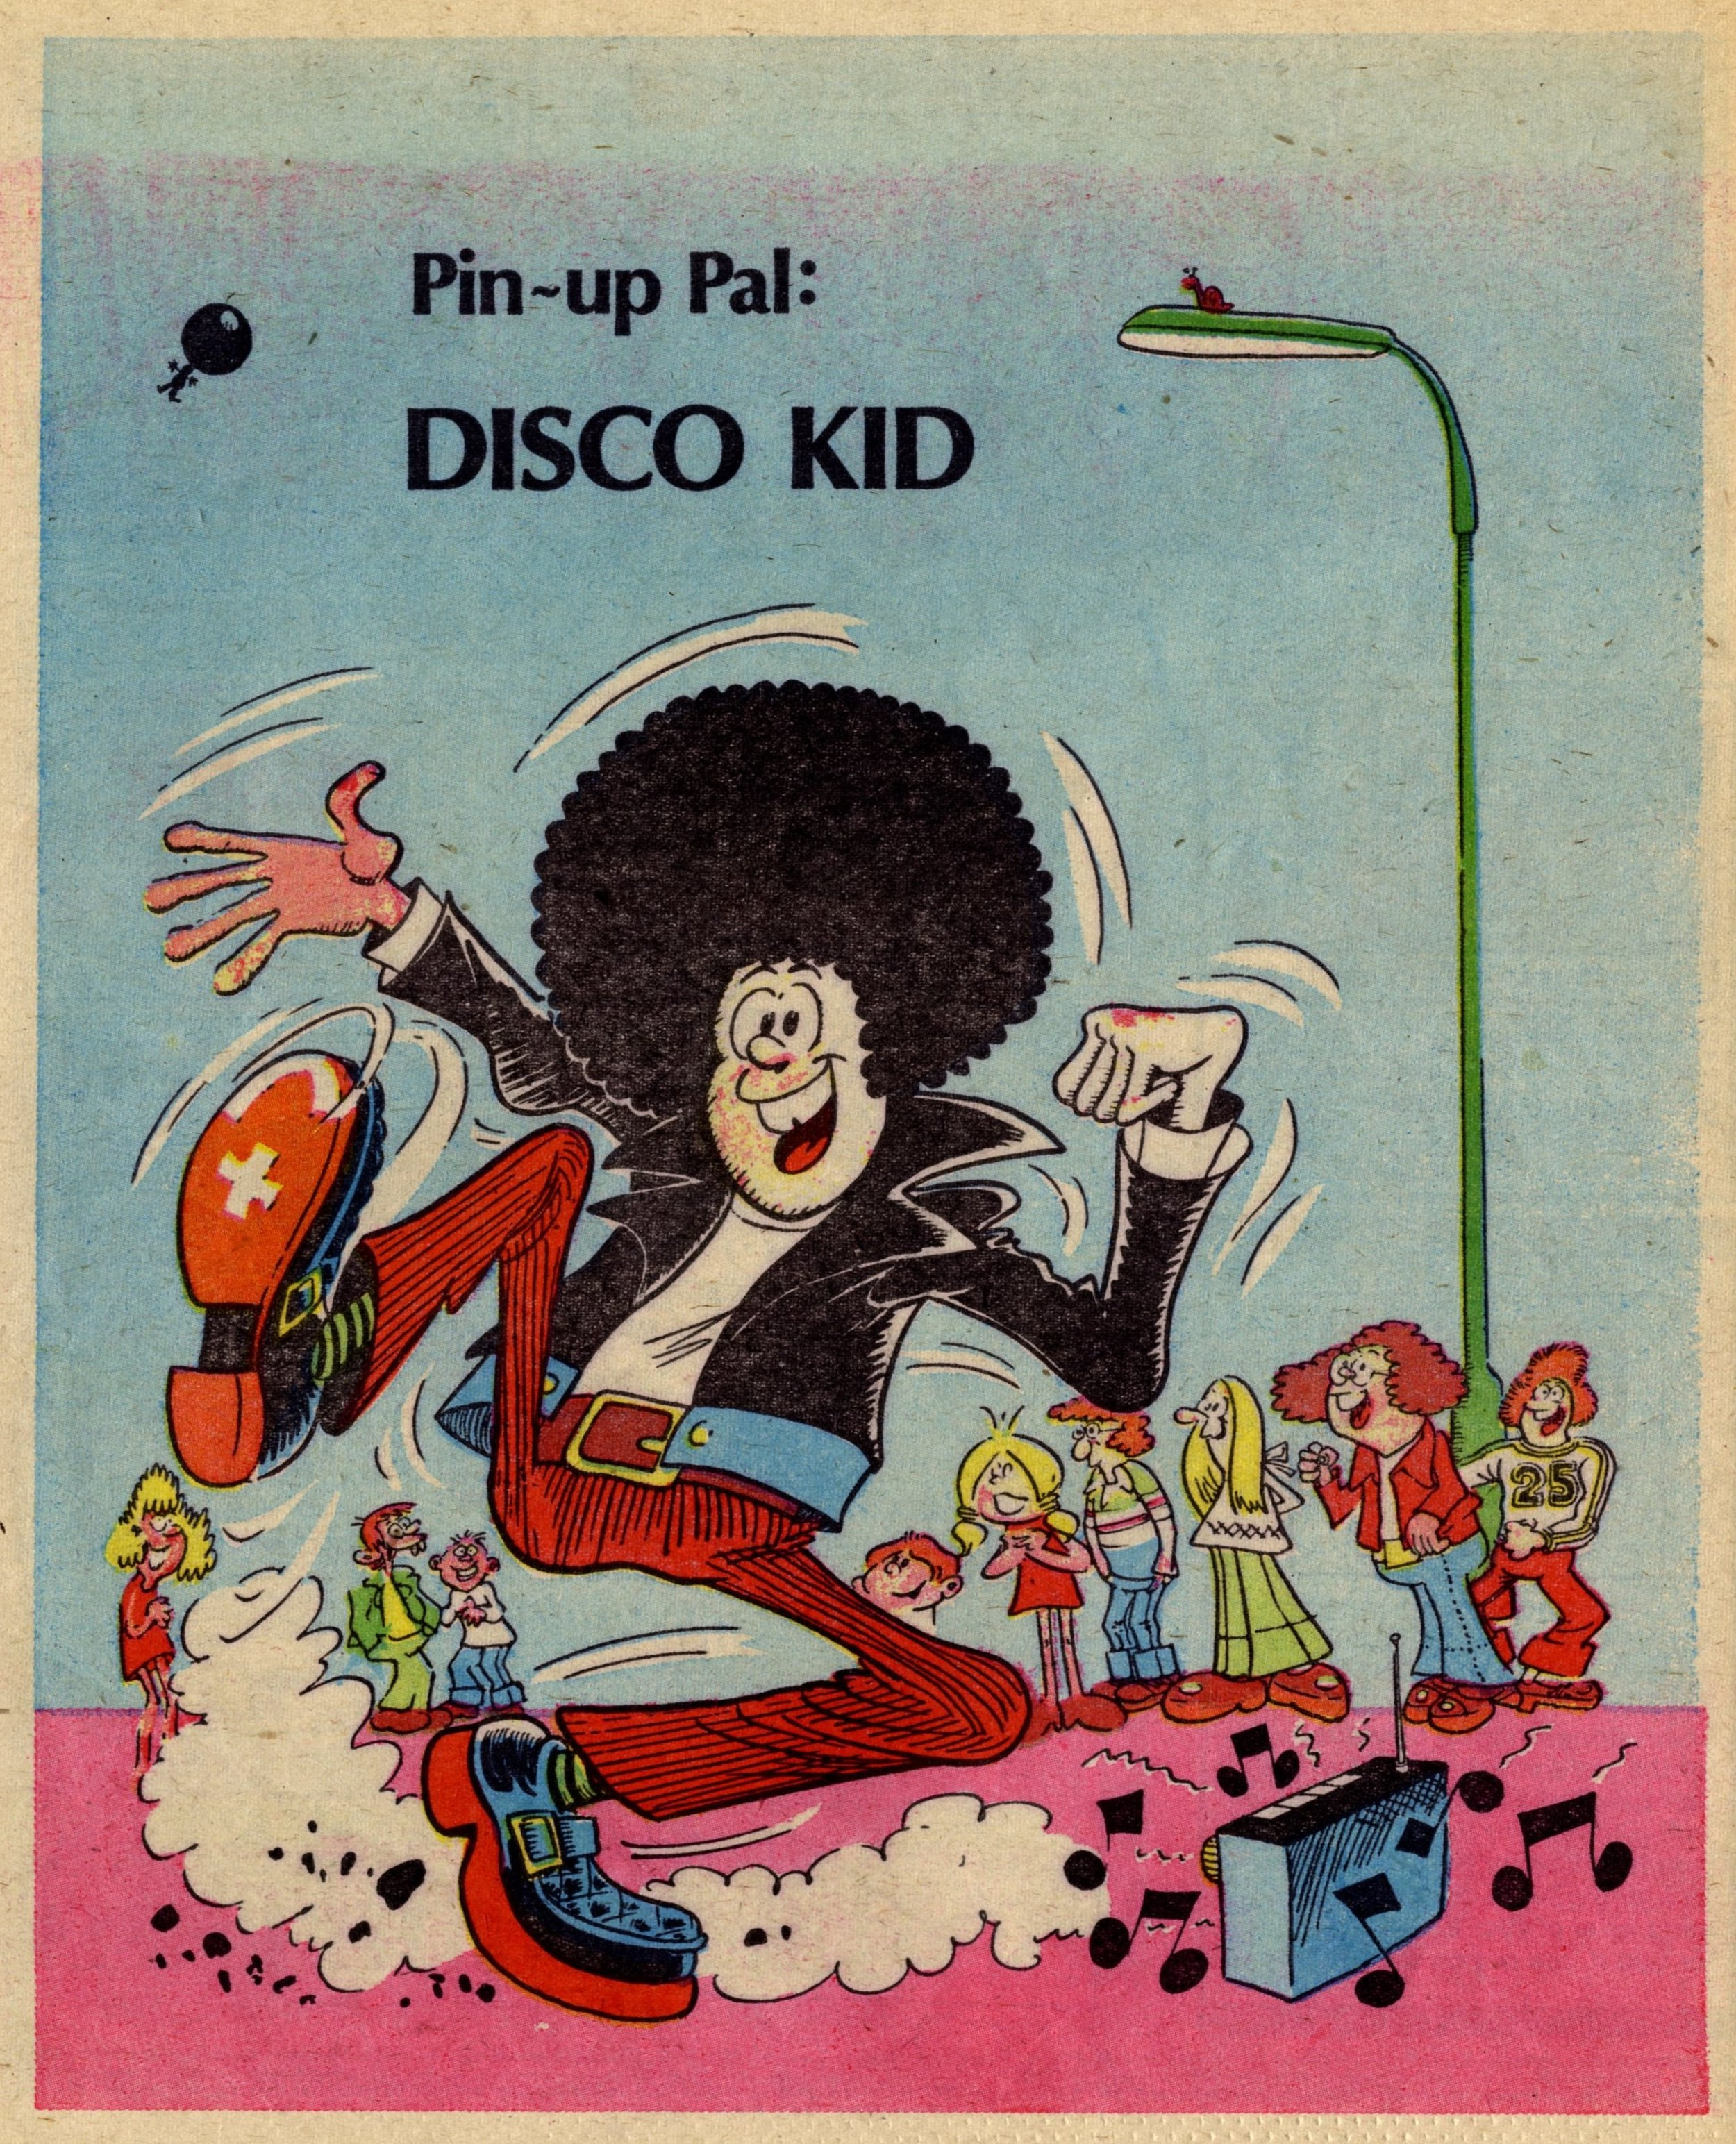 Pin-up Pal: Disco Kid (artist Frank McDiarmid), 16 September 1978